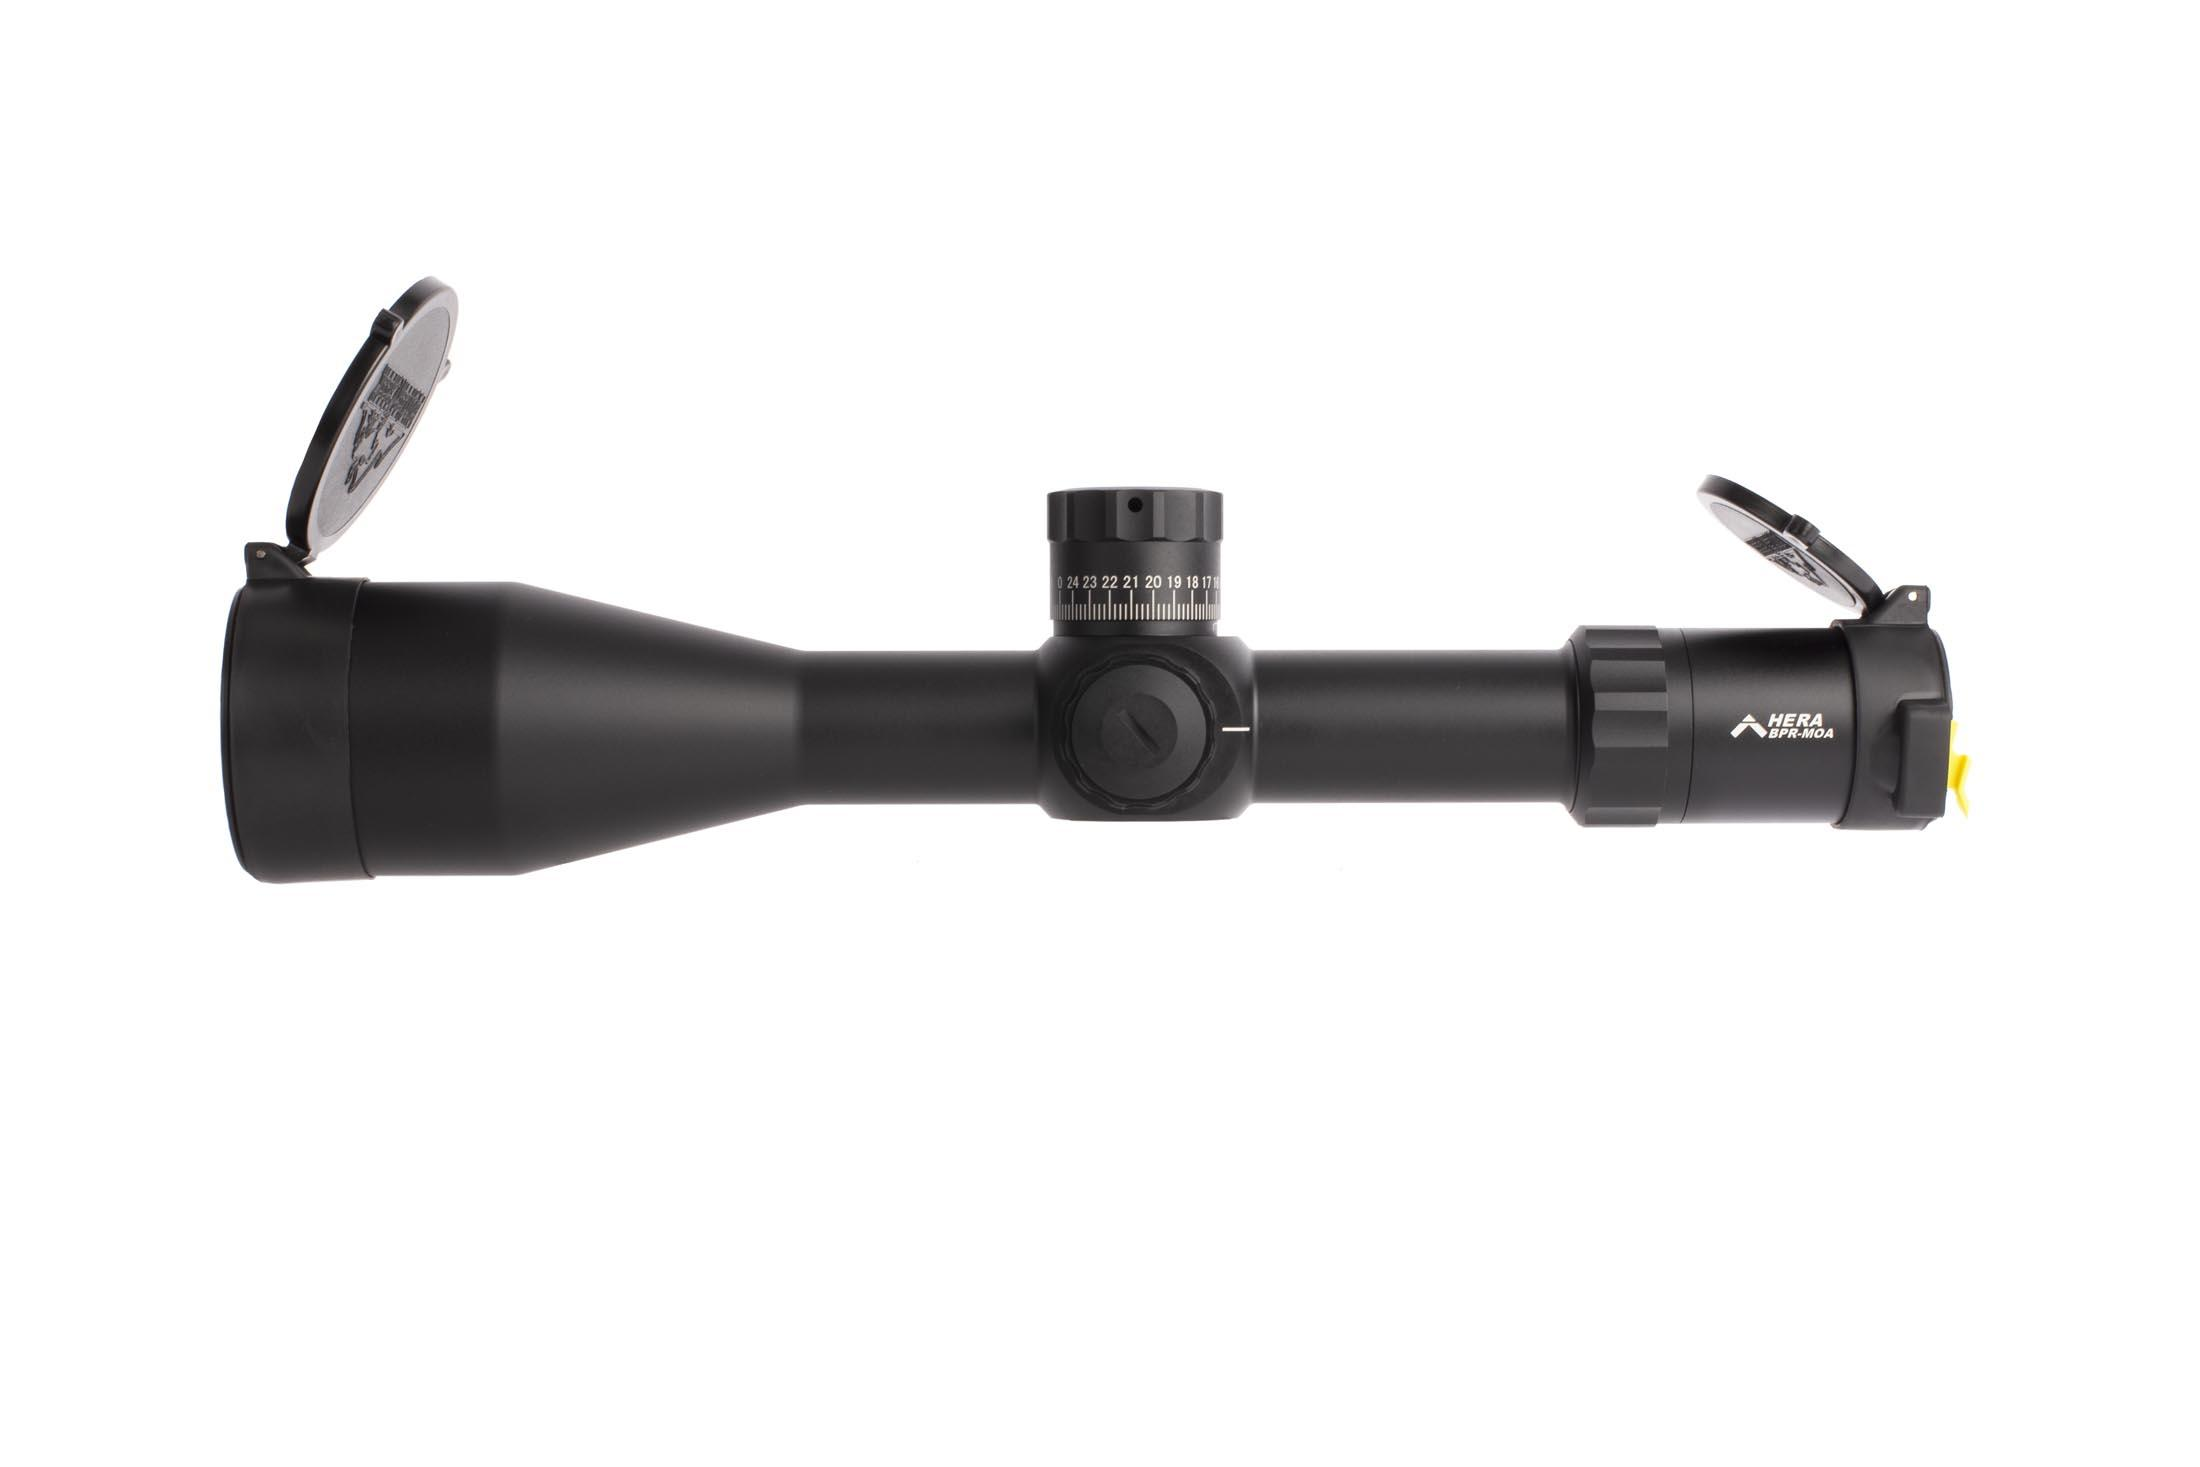 Platinum series PLX5 Hera BPR MOA 6-30x rifle scope features 11 brightness settings with off settings between